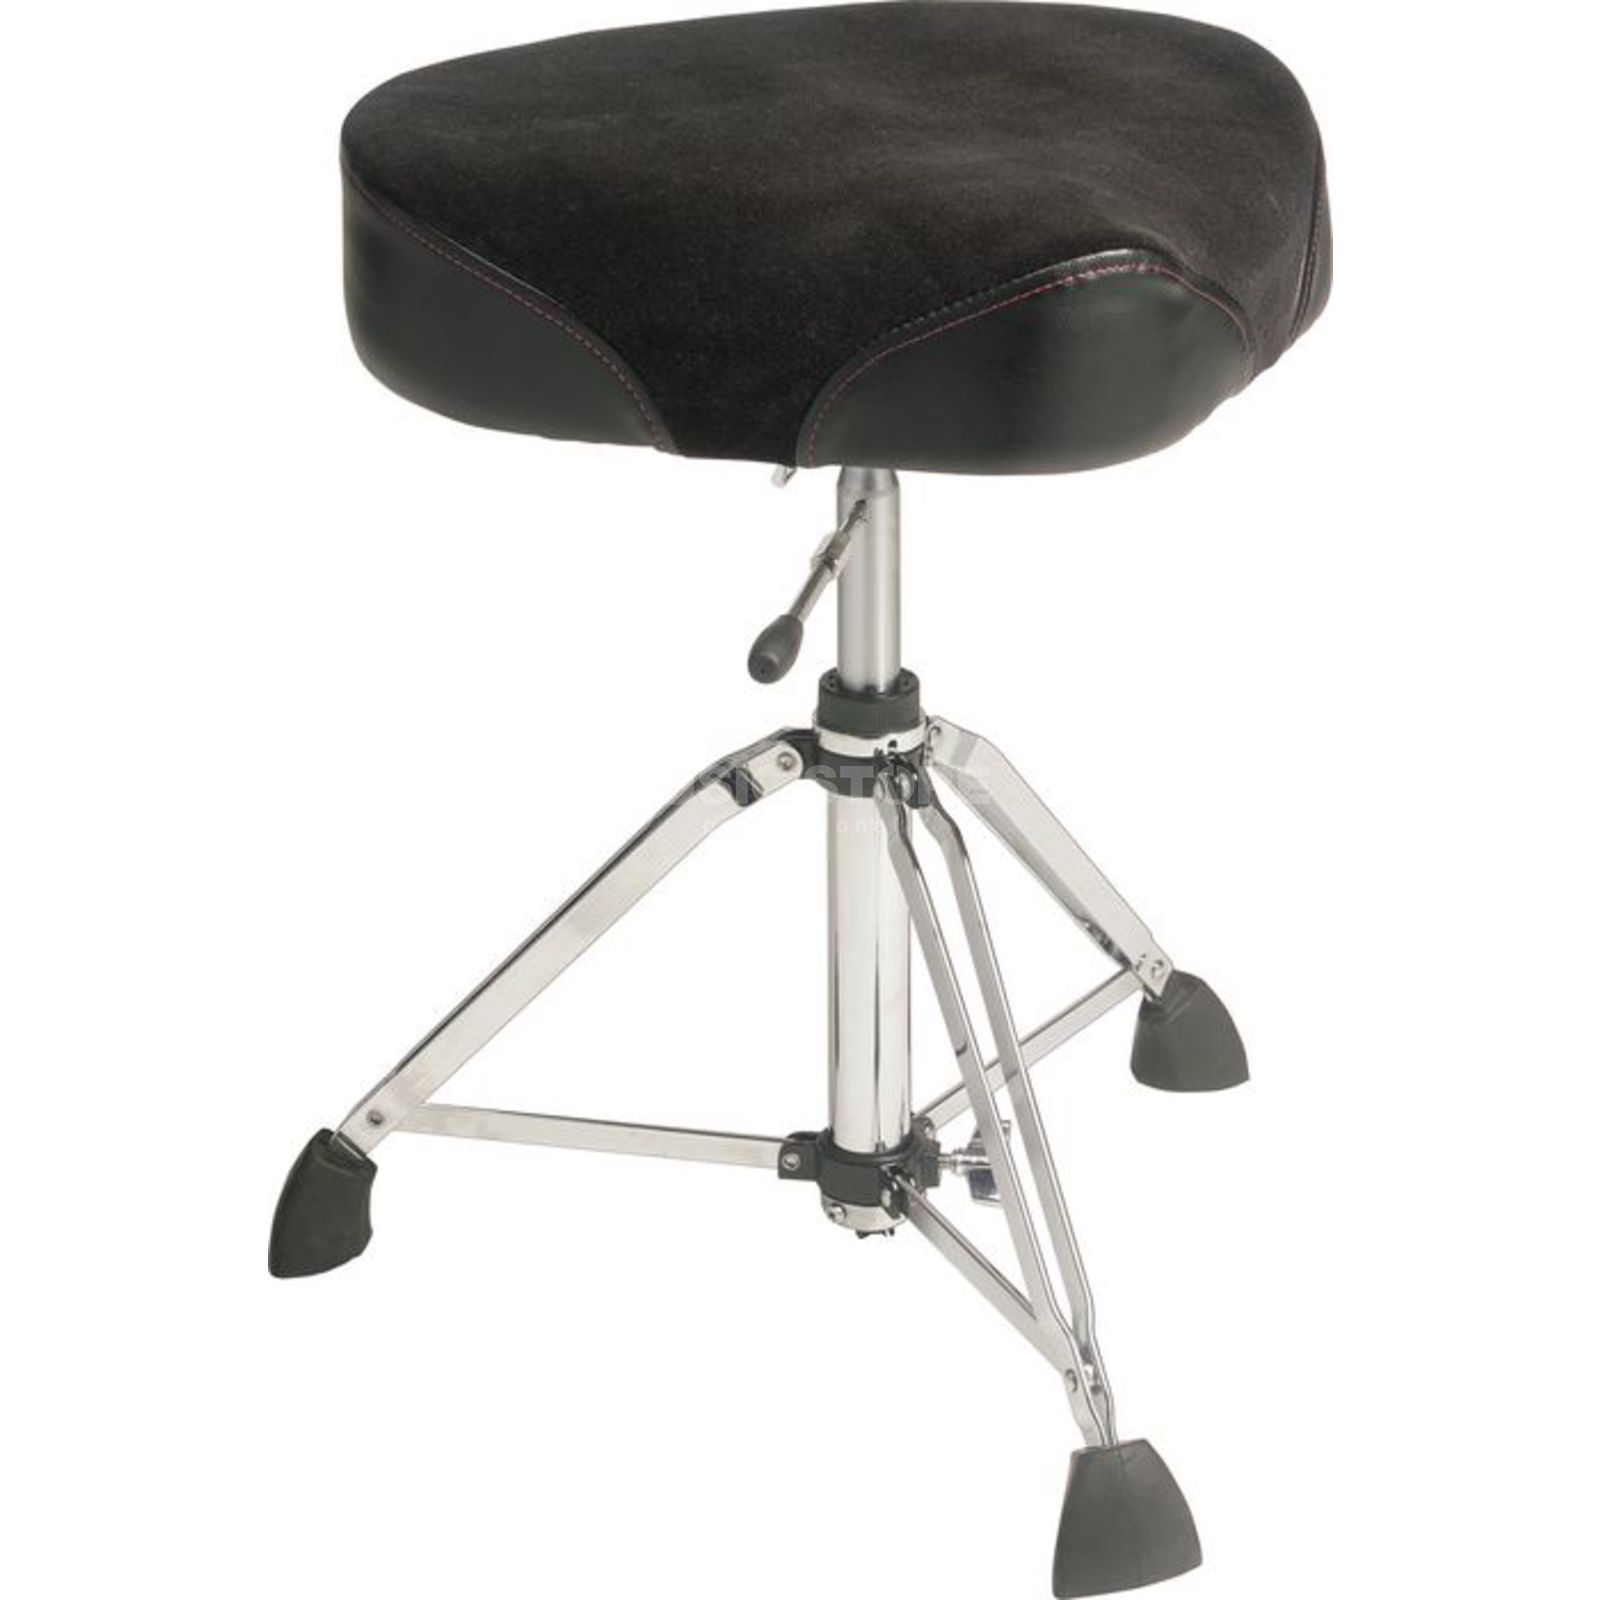 Gibraltar Drum Throne 9608HM Product Image